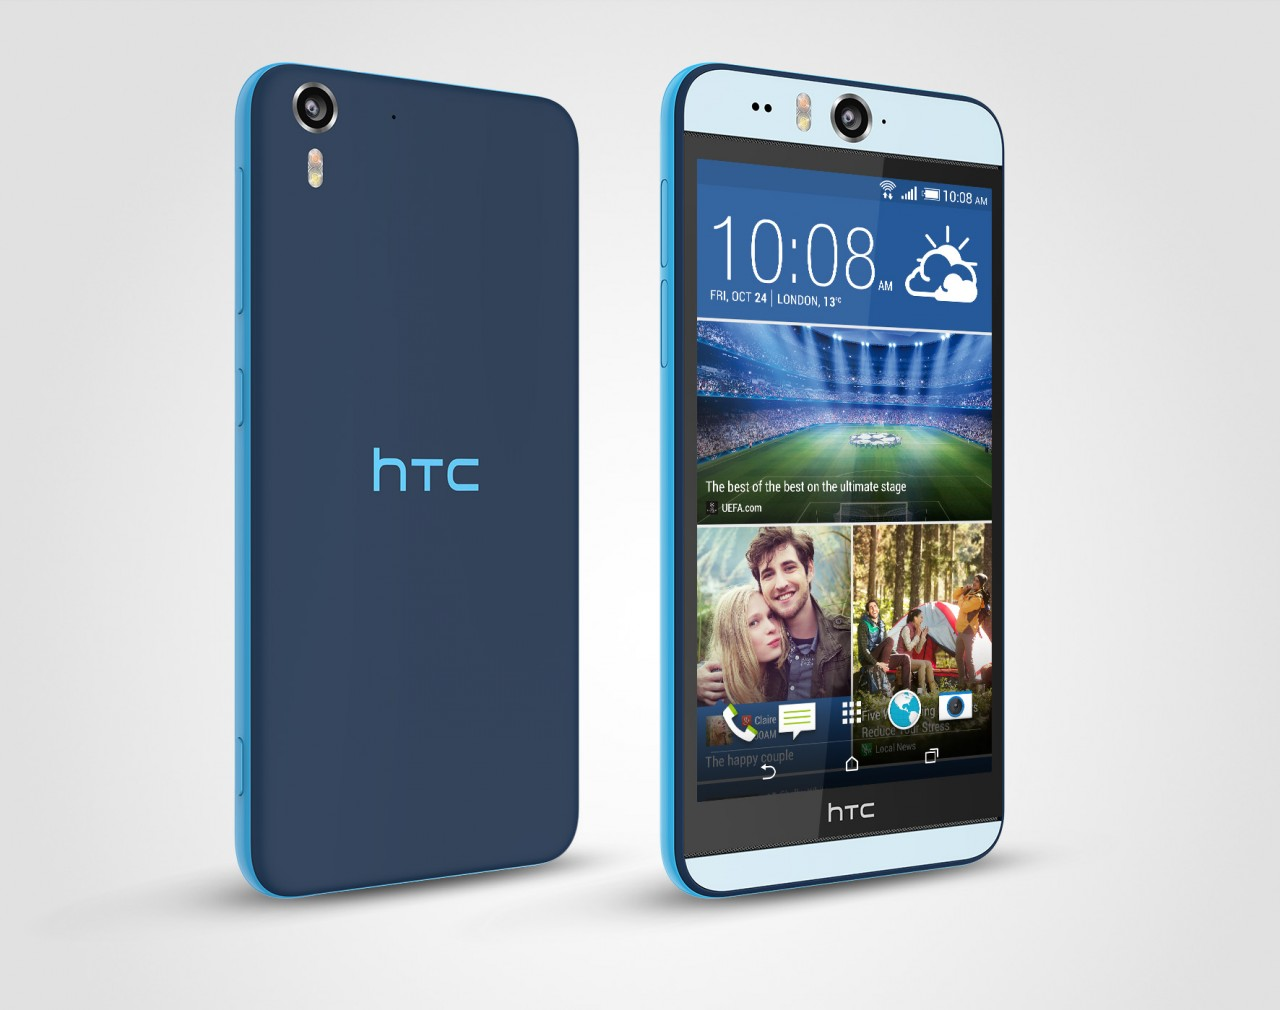 HTC-Desire-Eye-Matt-Blue-2-300-dpi-.jpg